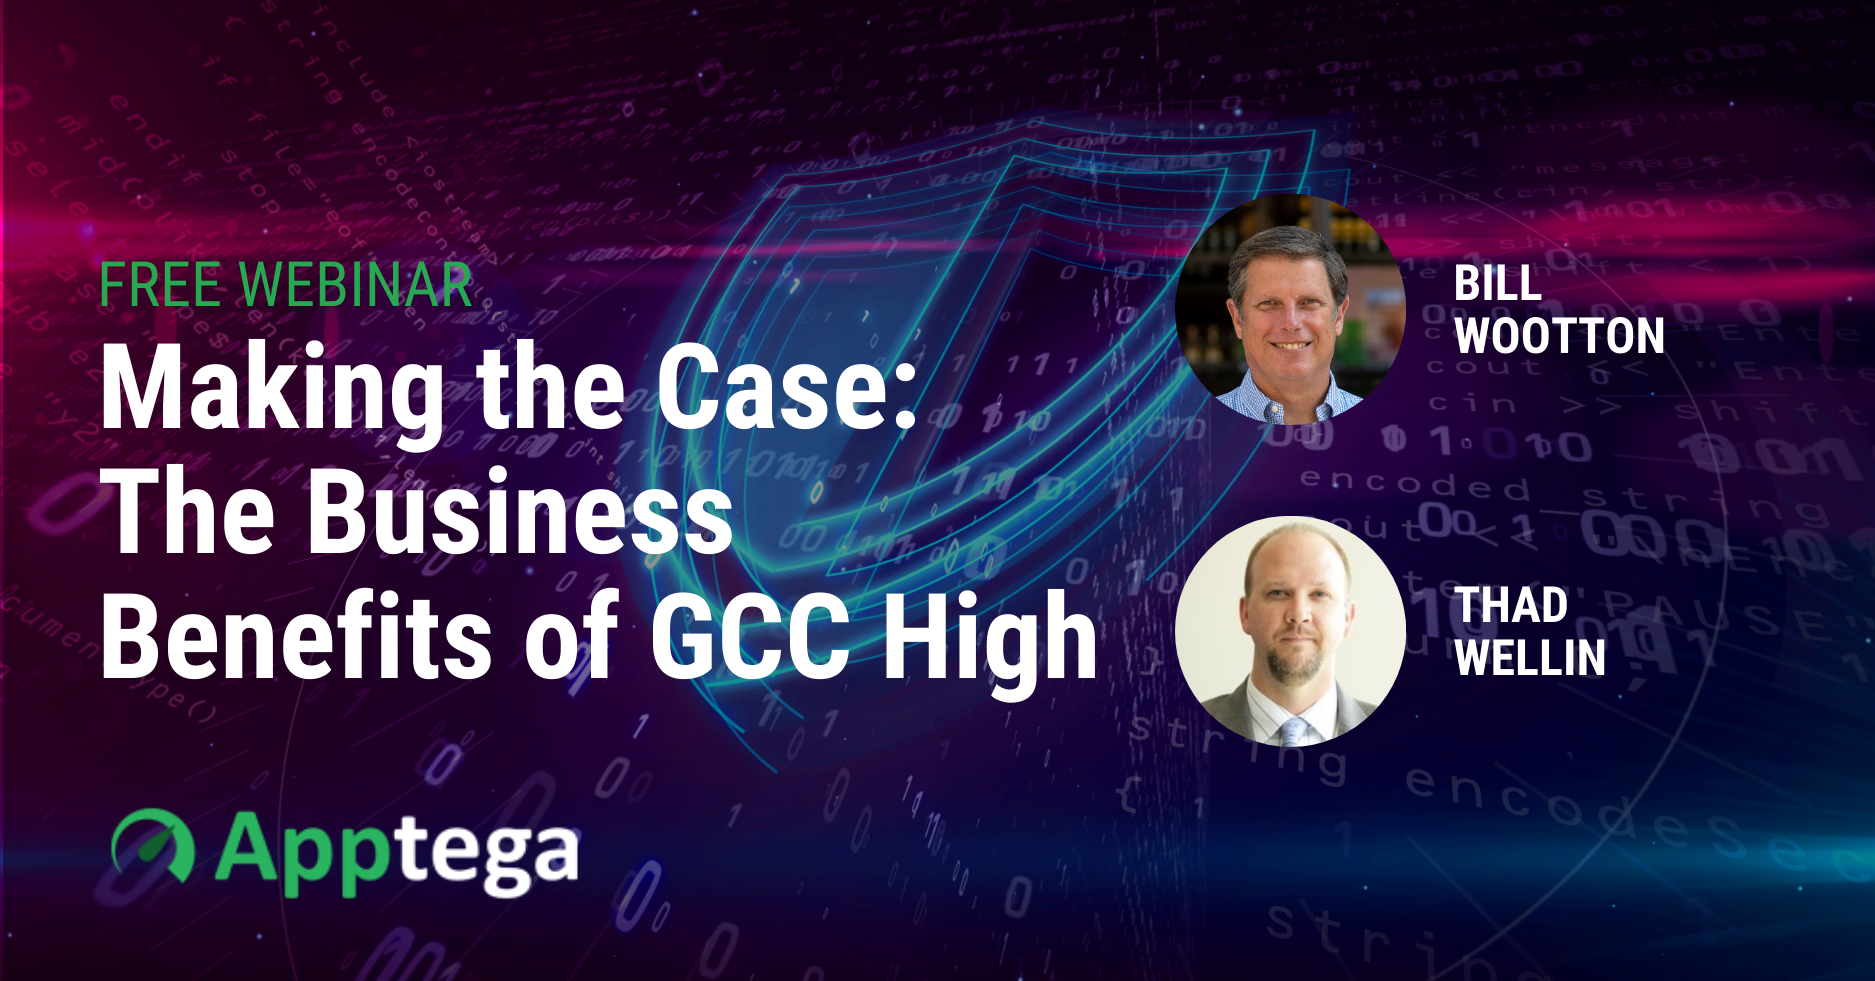 GCC High Webinar Image